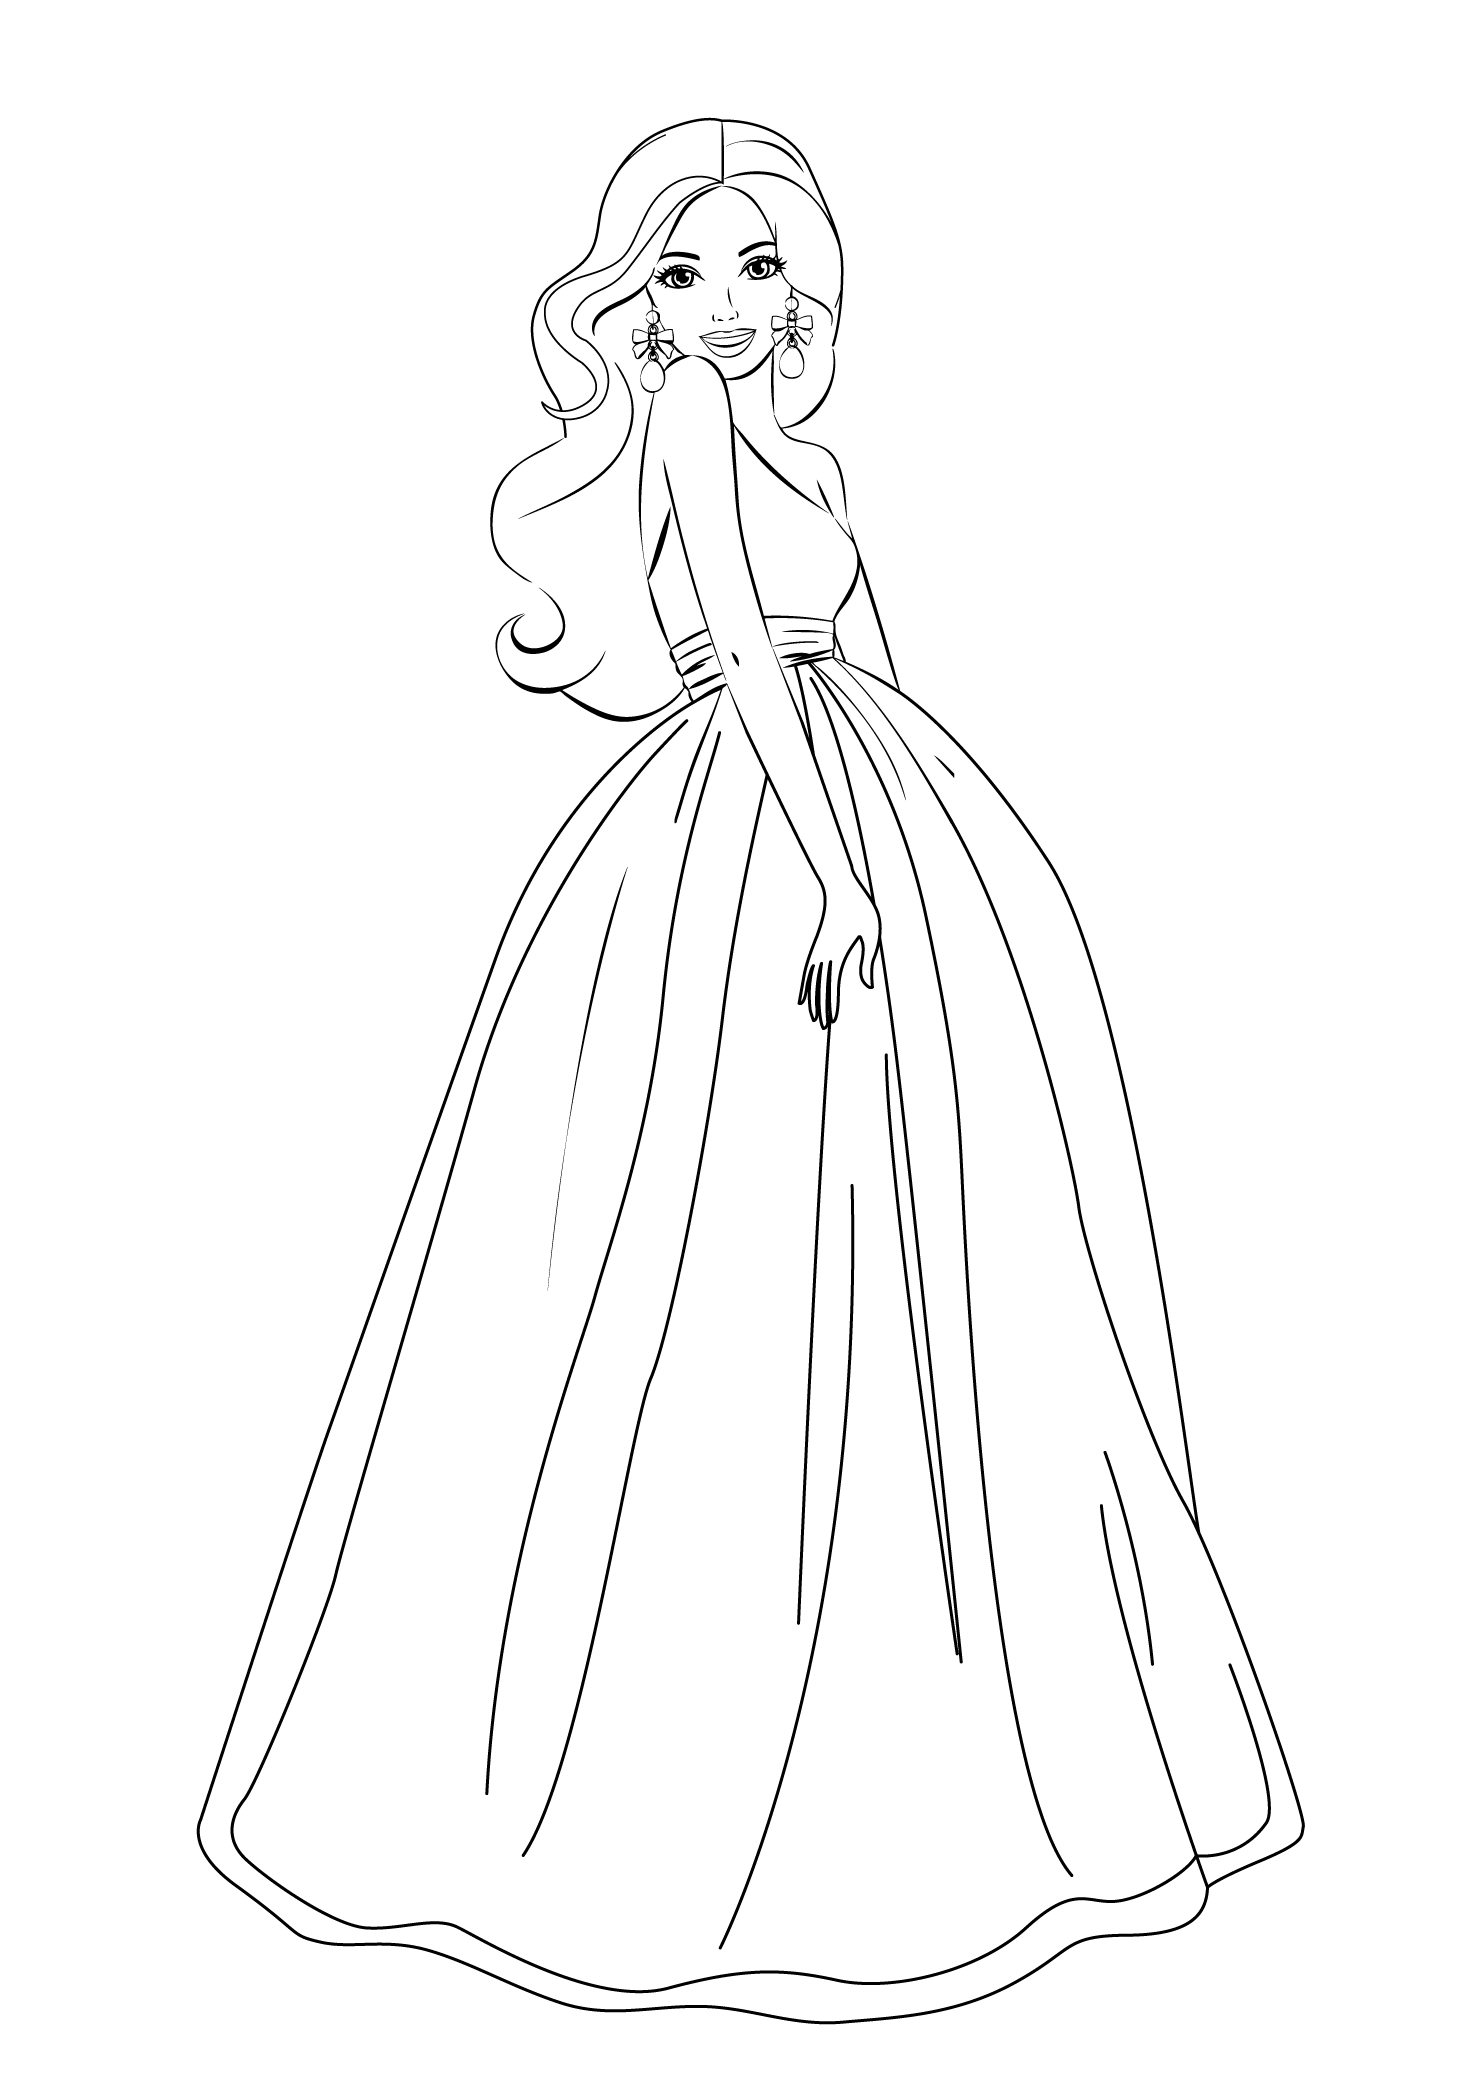 Barbie coloring pages for girls free printable | Barbie ...